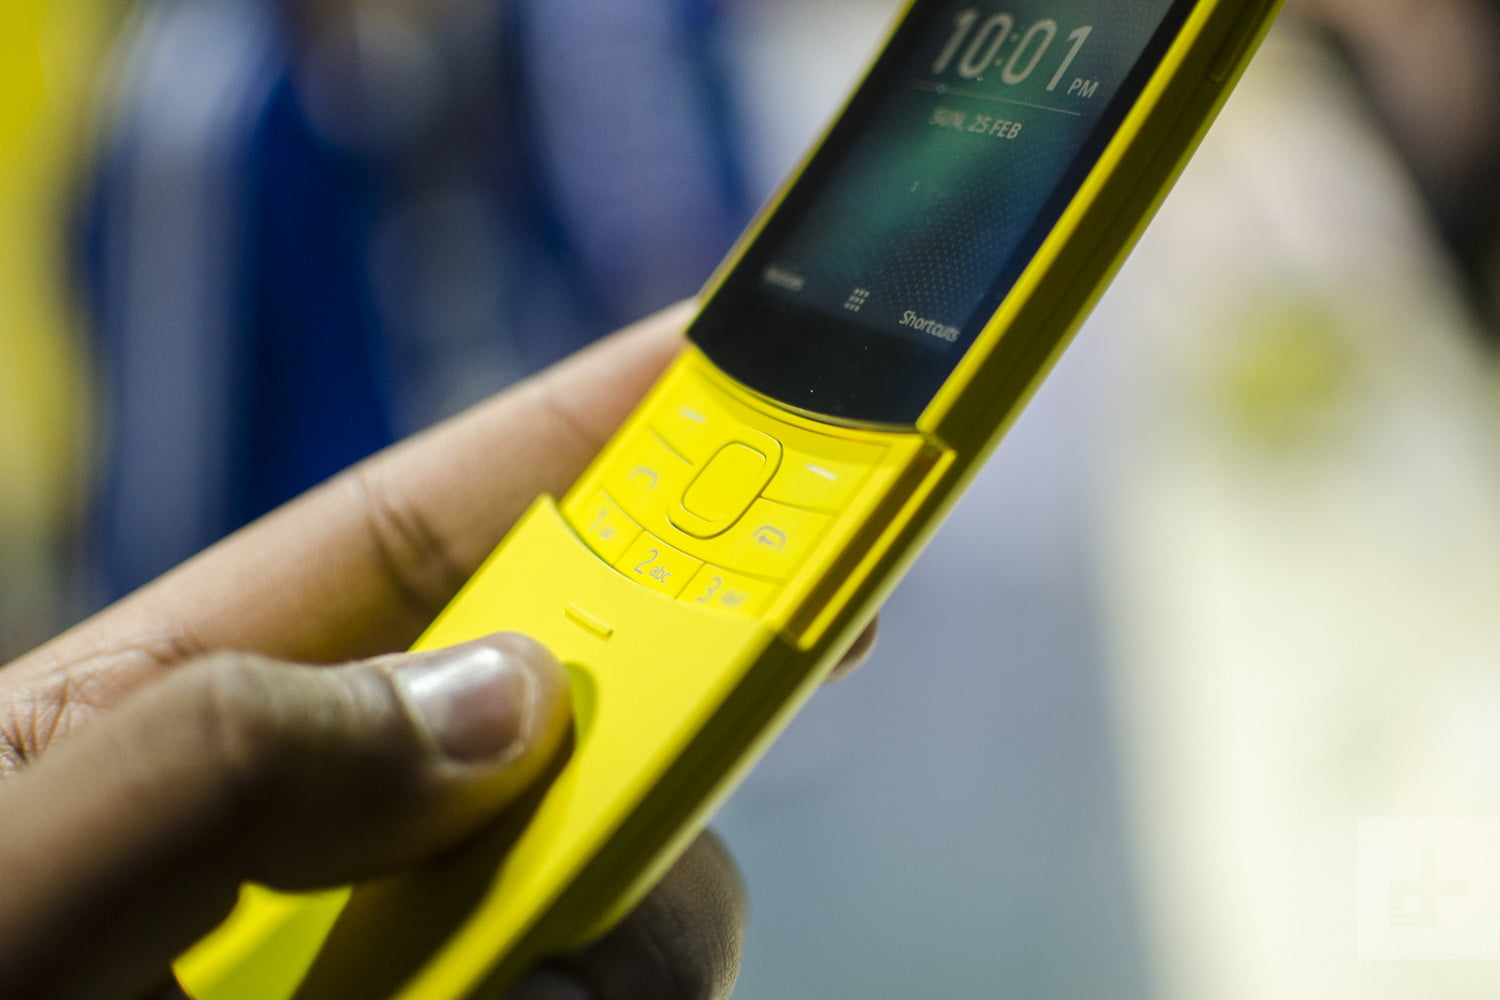 Nokia 8110 4g Hands On Review Digital Trends Circuit Diagram Book